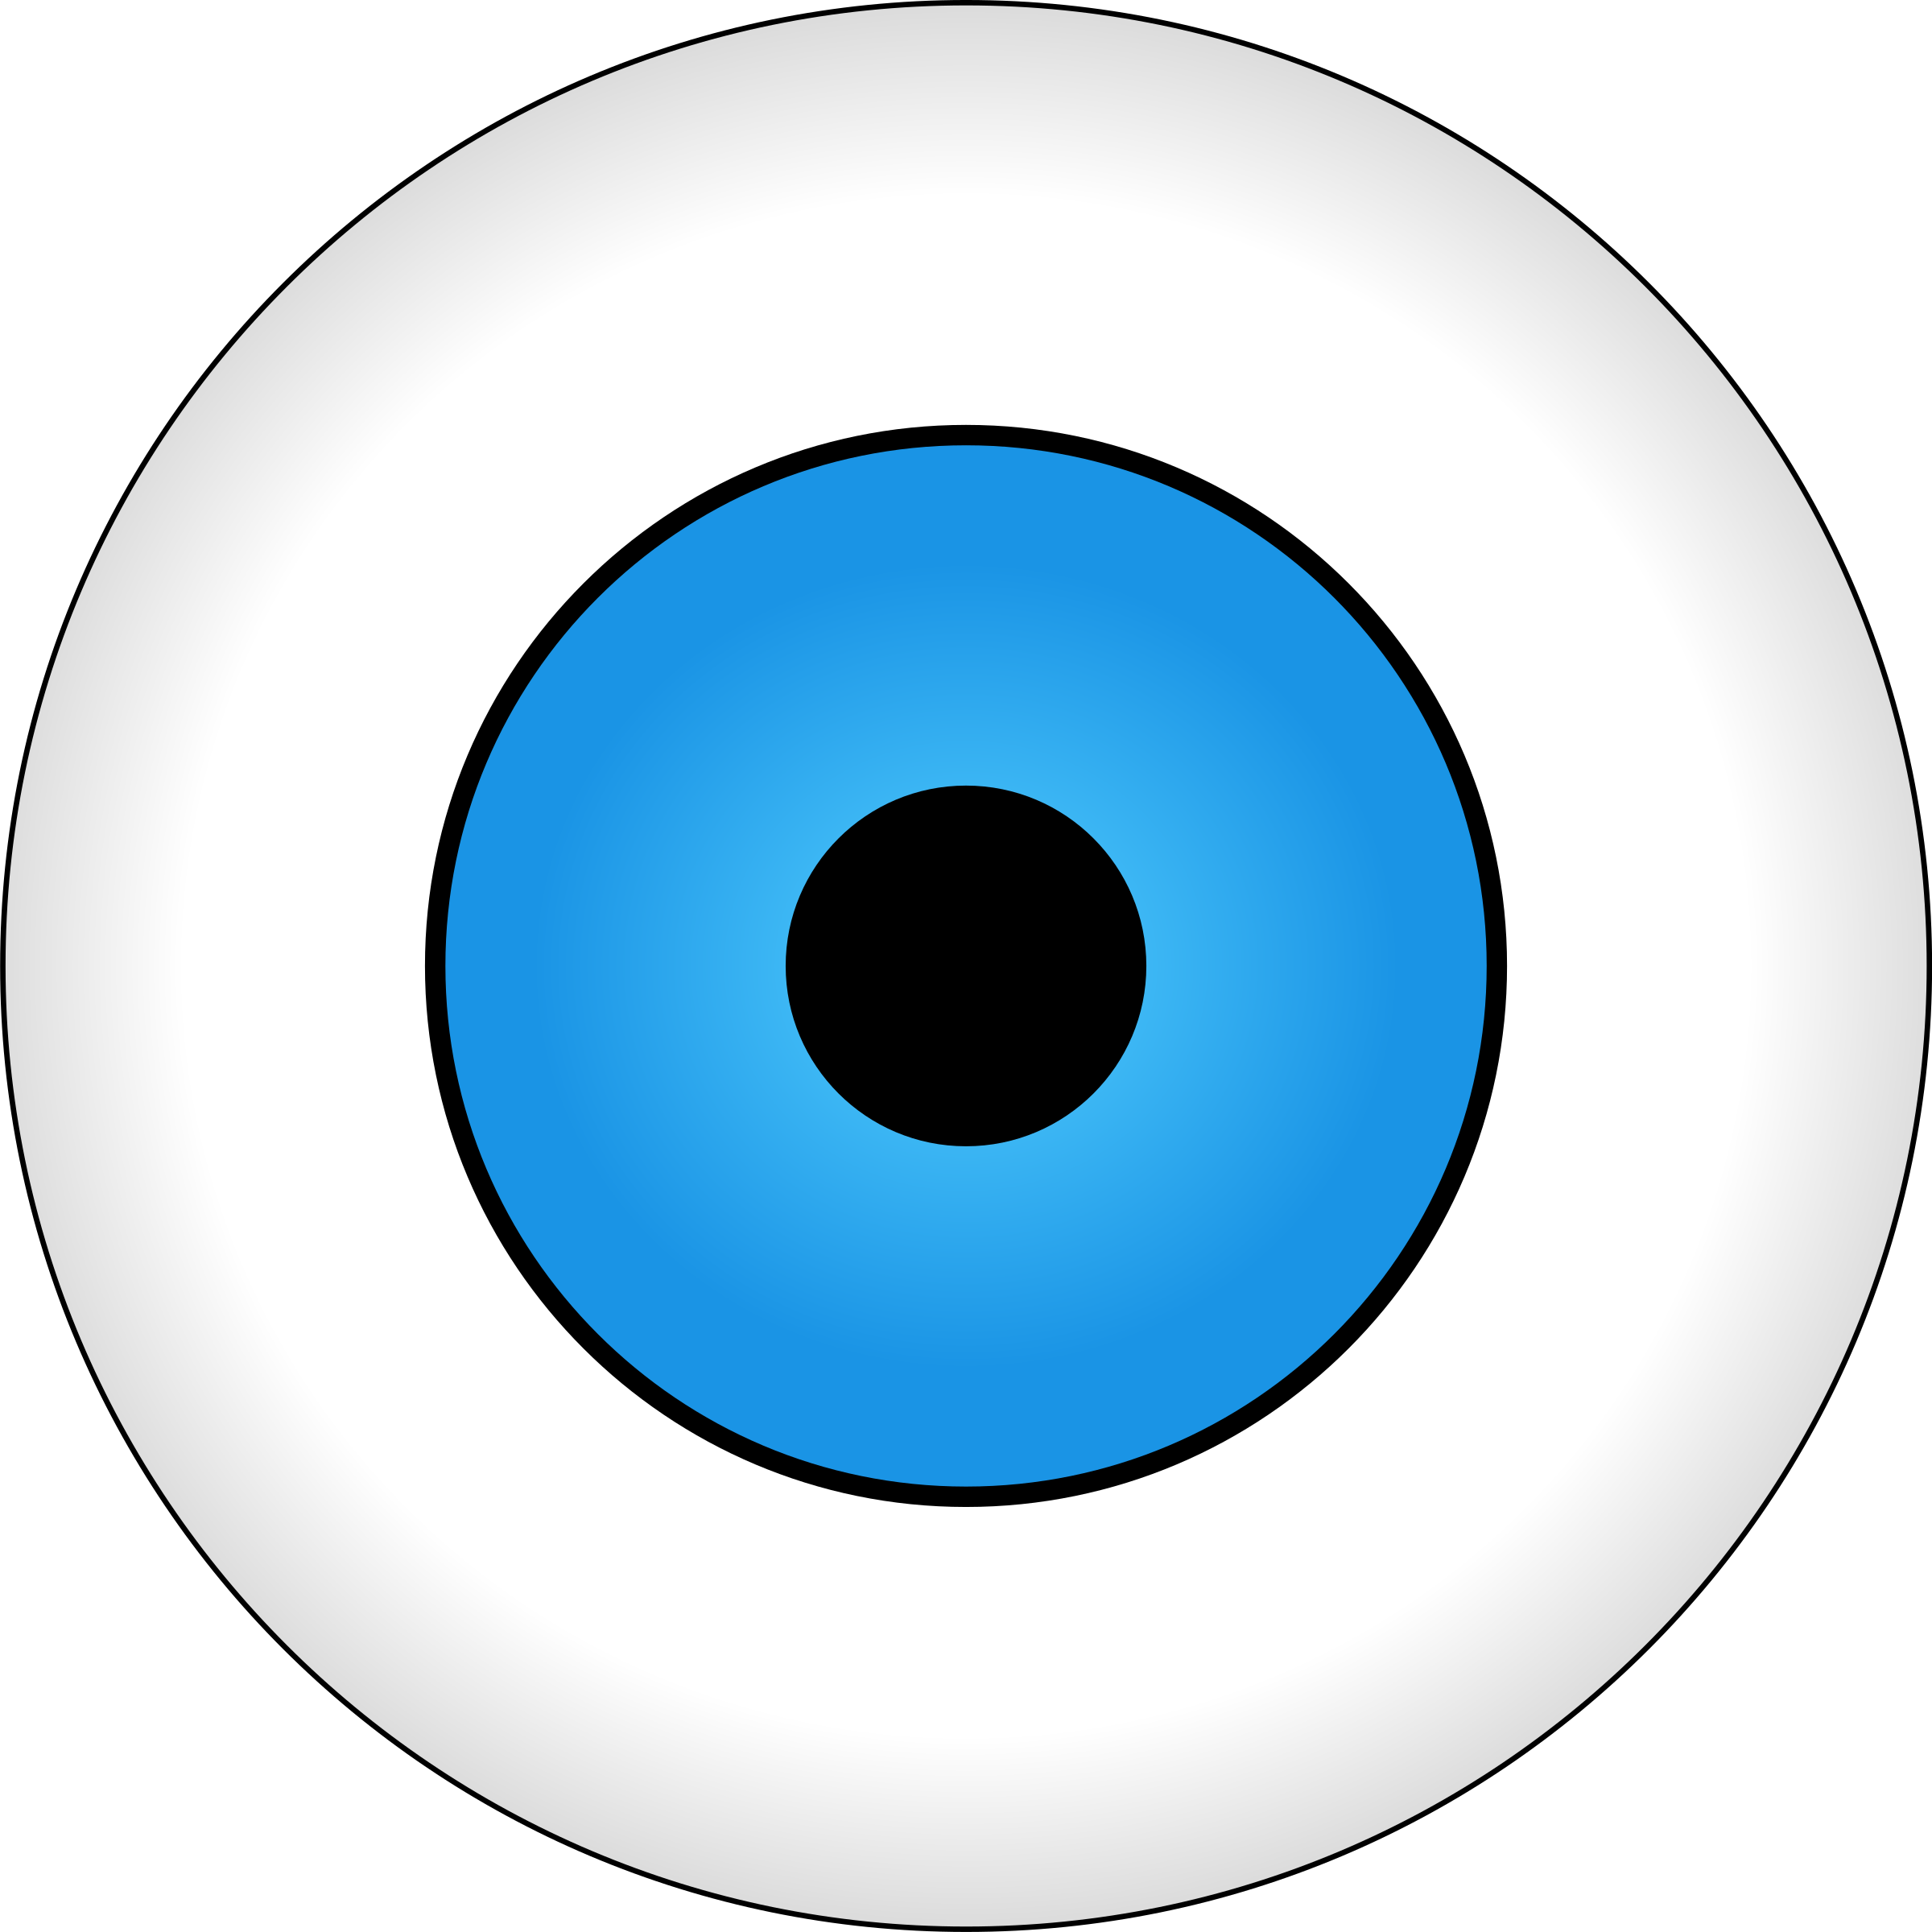 Olho Azul / Blue Eye by tonlima